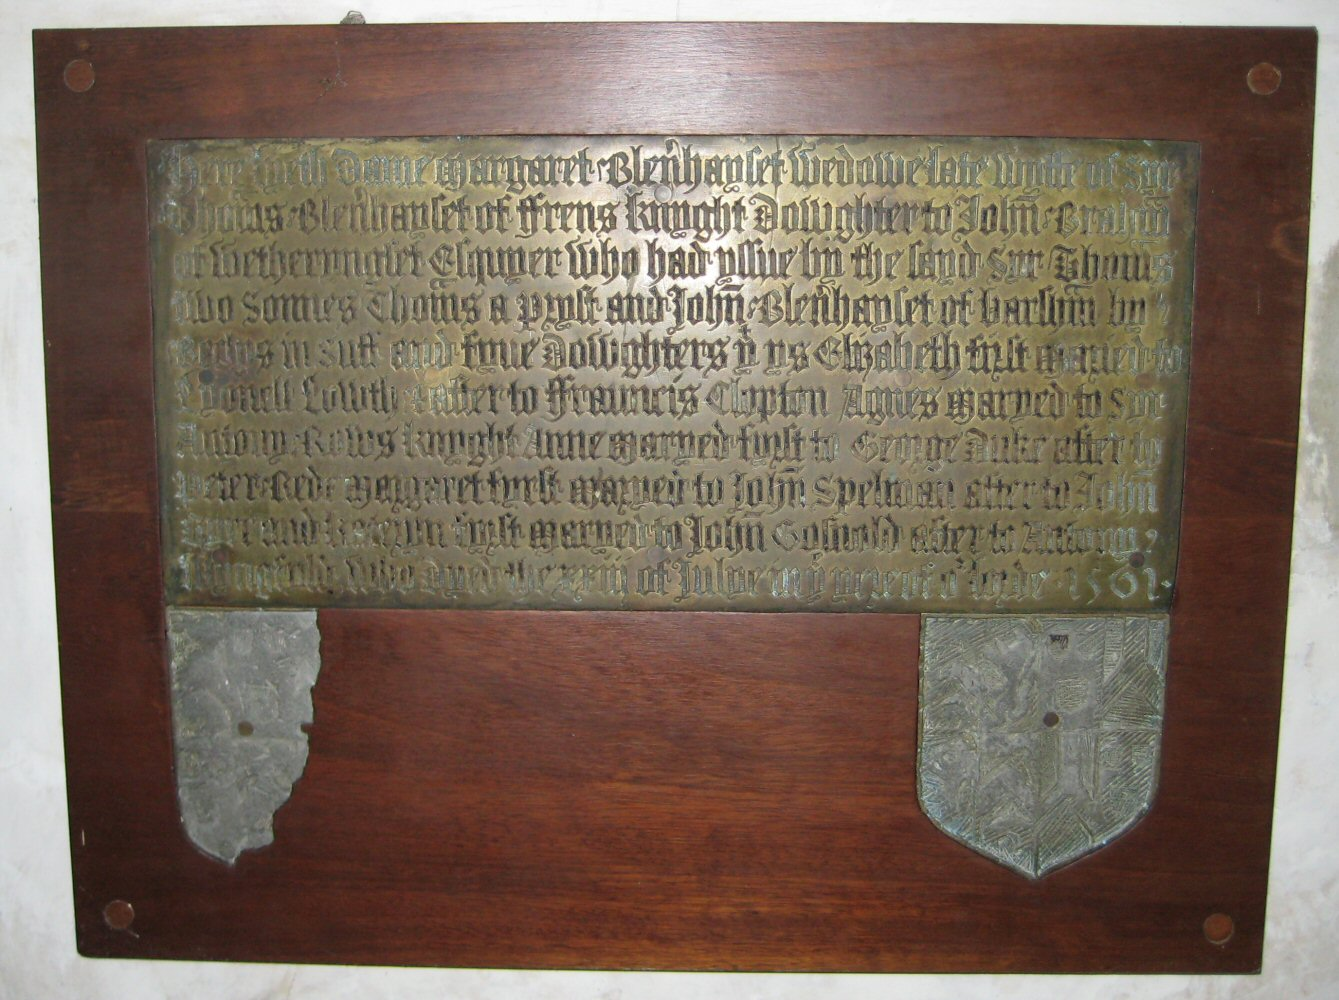 Inscription brass for Dame Margaret BH 1561, above two surviving shields of arms for her husband Sir Thomas BH 1531